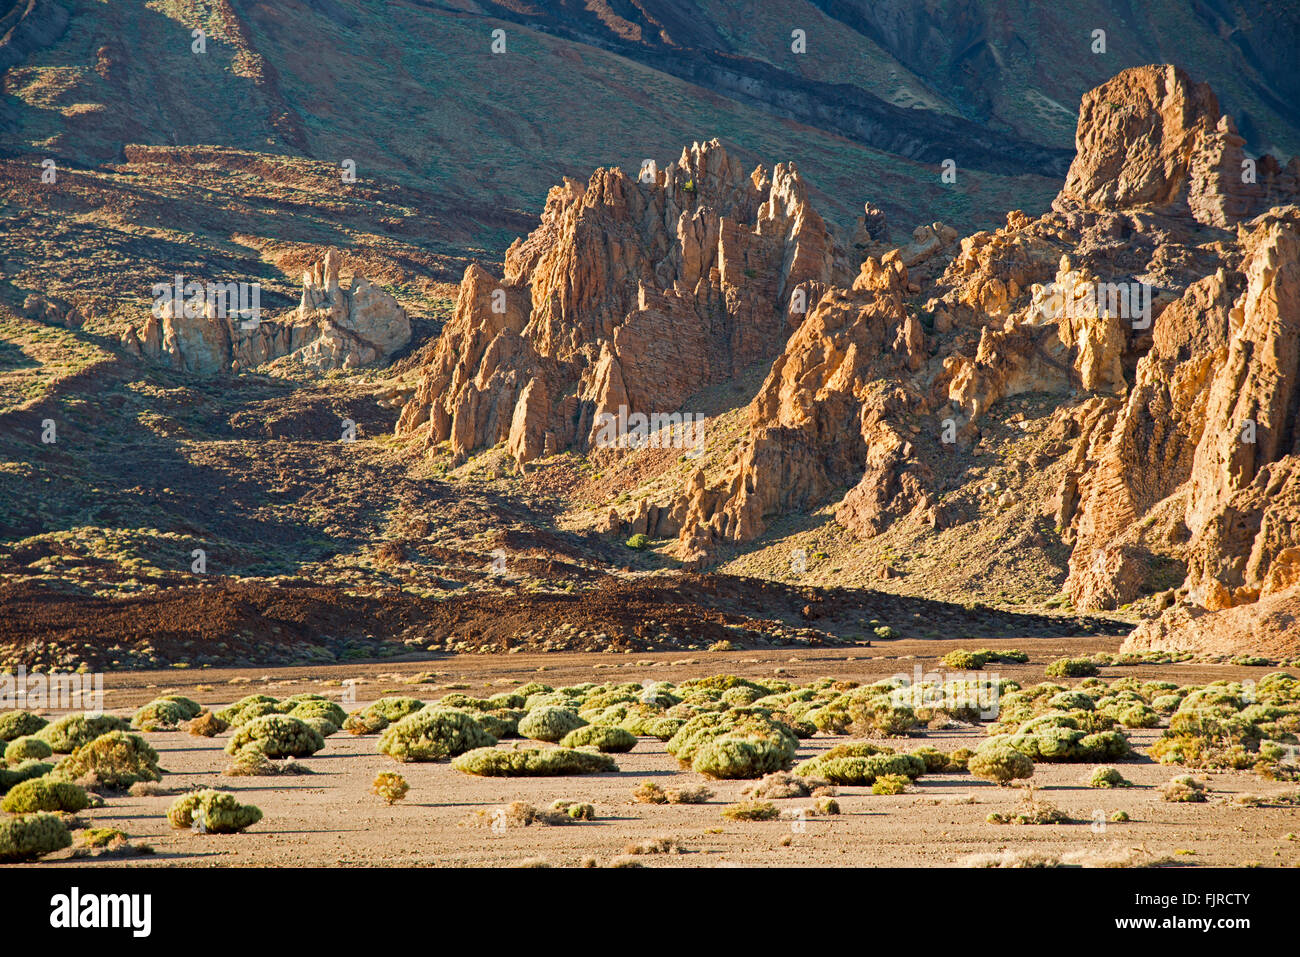 geography / travel, Spain, Tenerife, landscapes, Llano de Ucanca with Roques de Garcia, Additional-Rights-Clearance - Stock Image